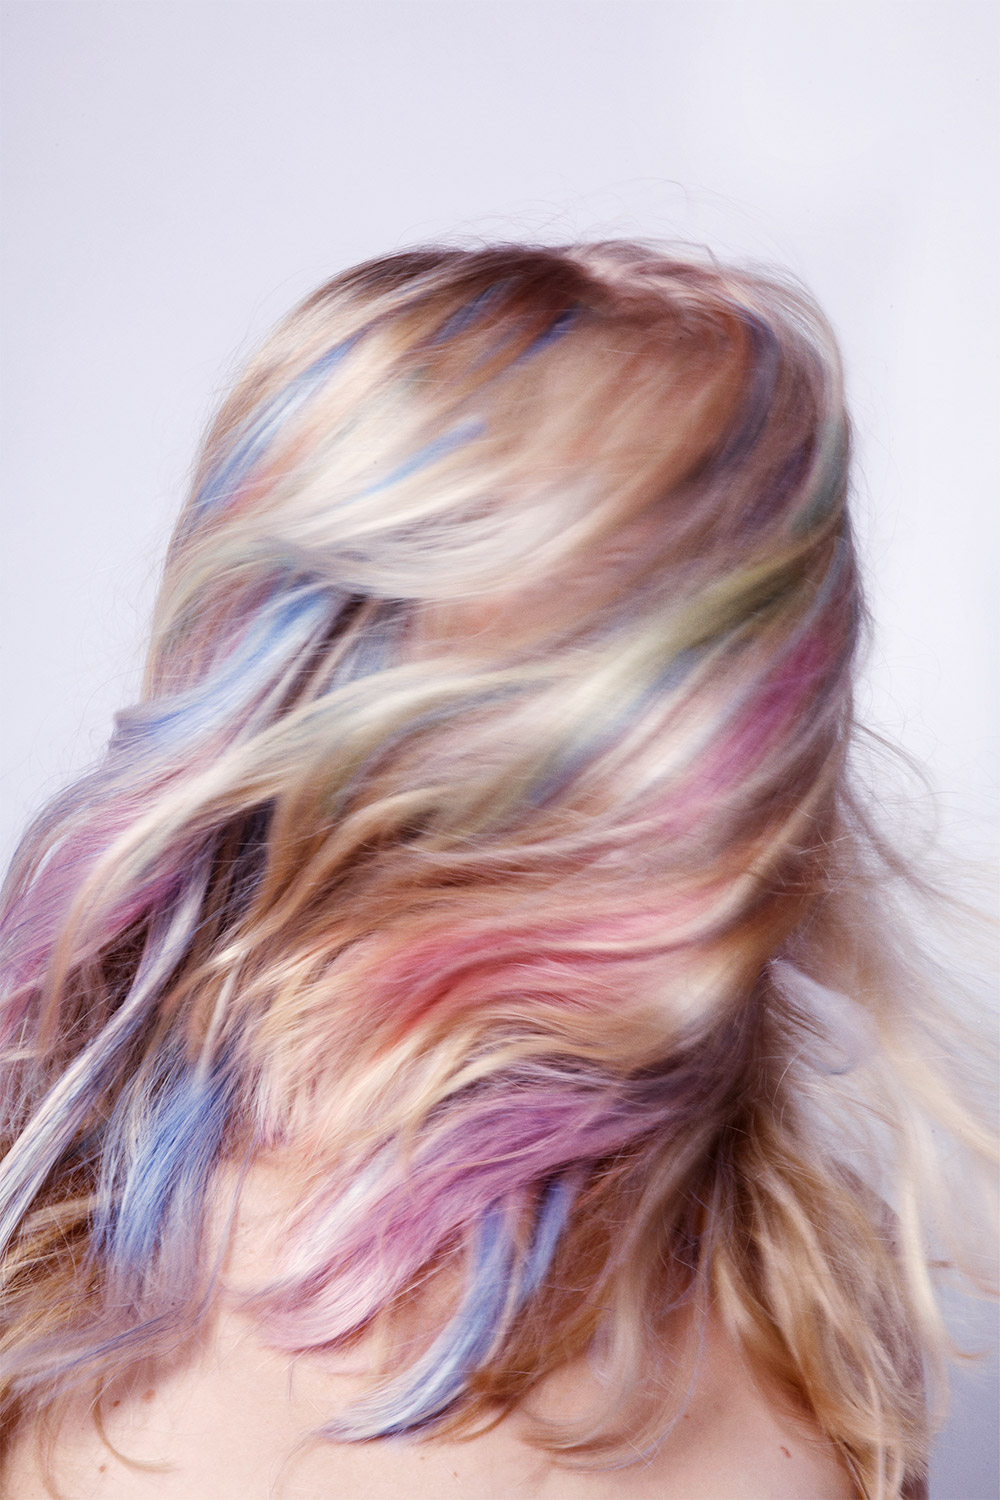 My Little Pony Pastel Rainbow Hair Editorial With Anne Sophie Monrad